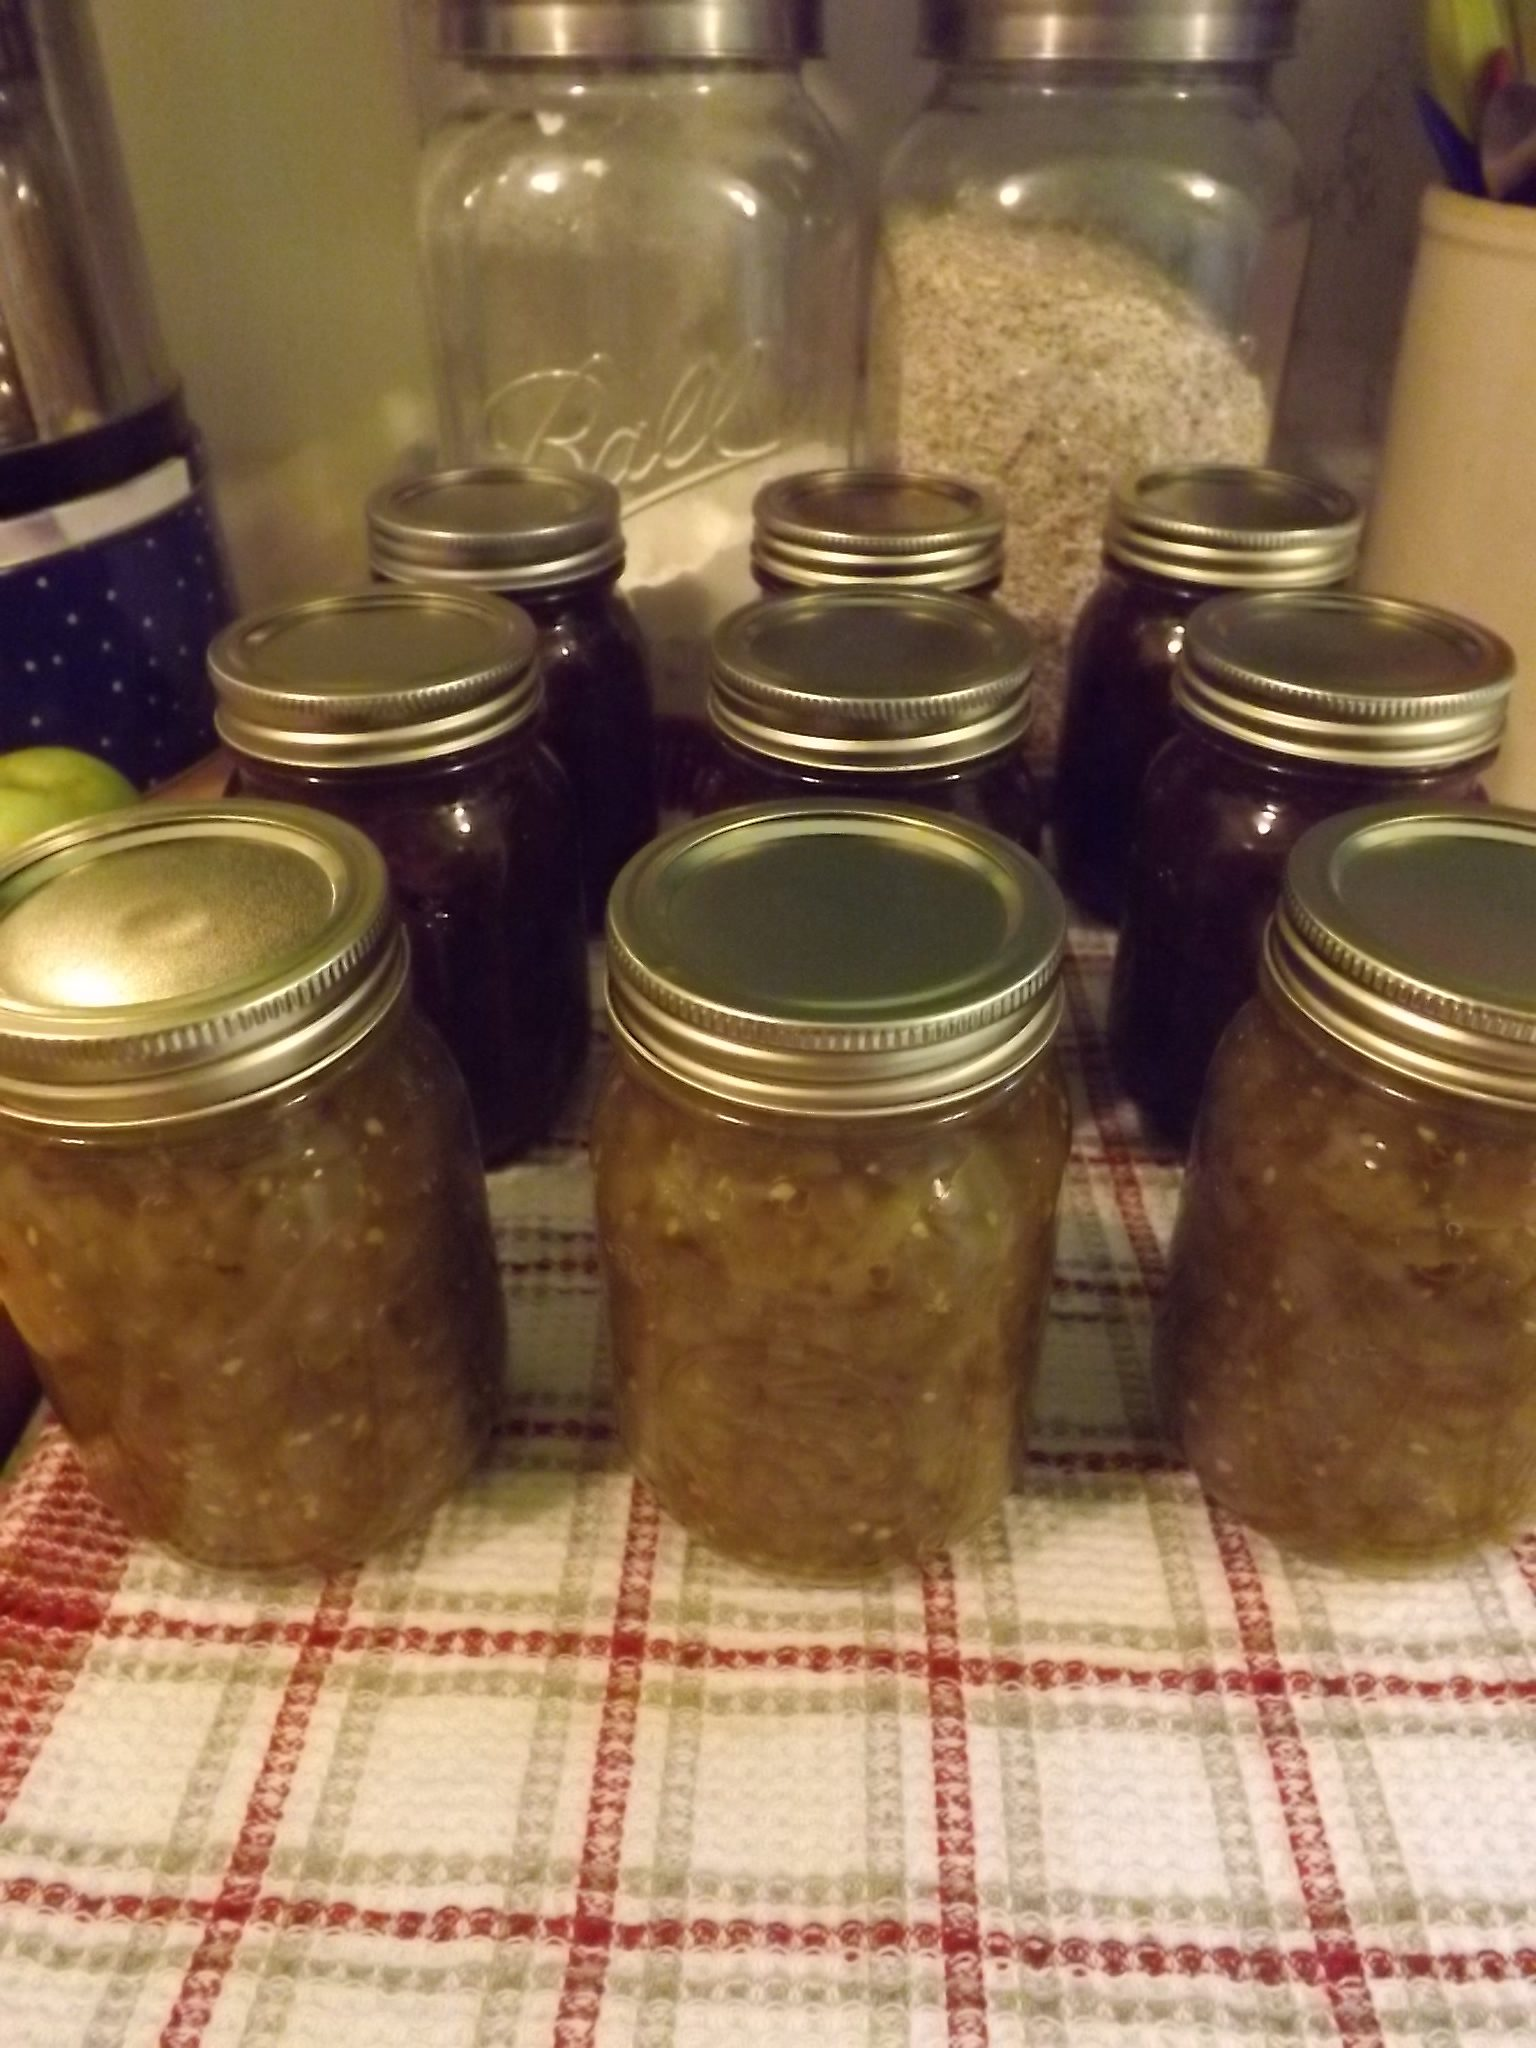 jars of mincemeat and relish